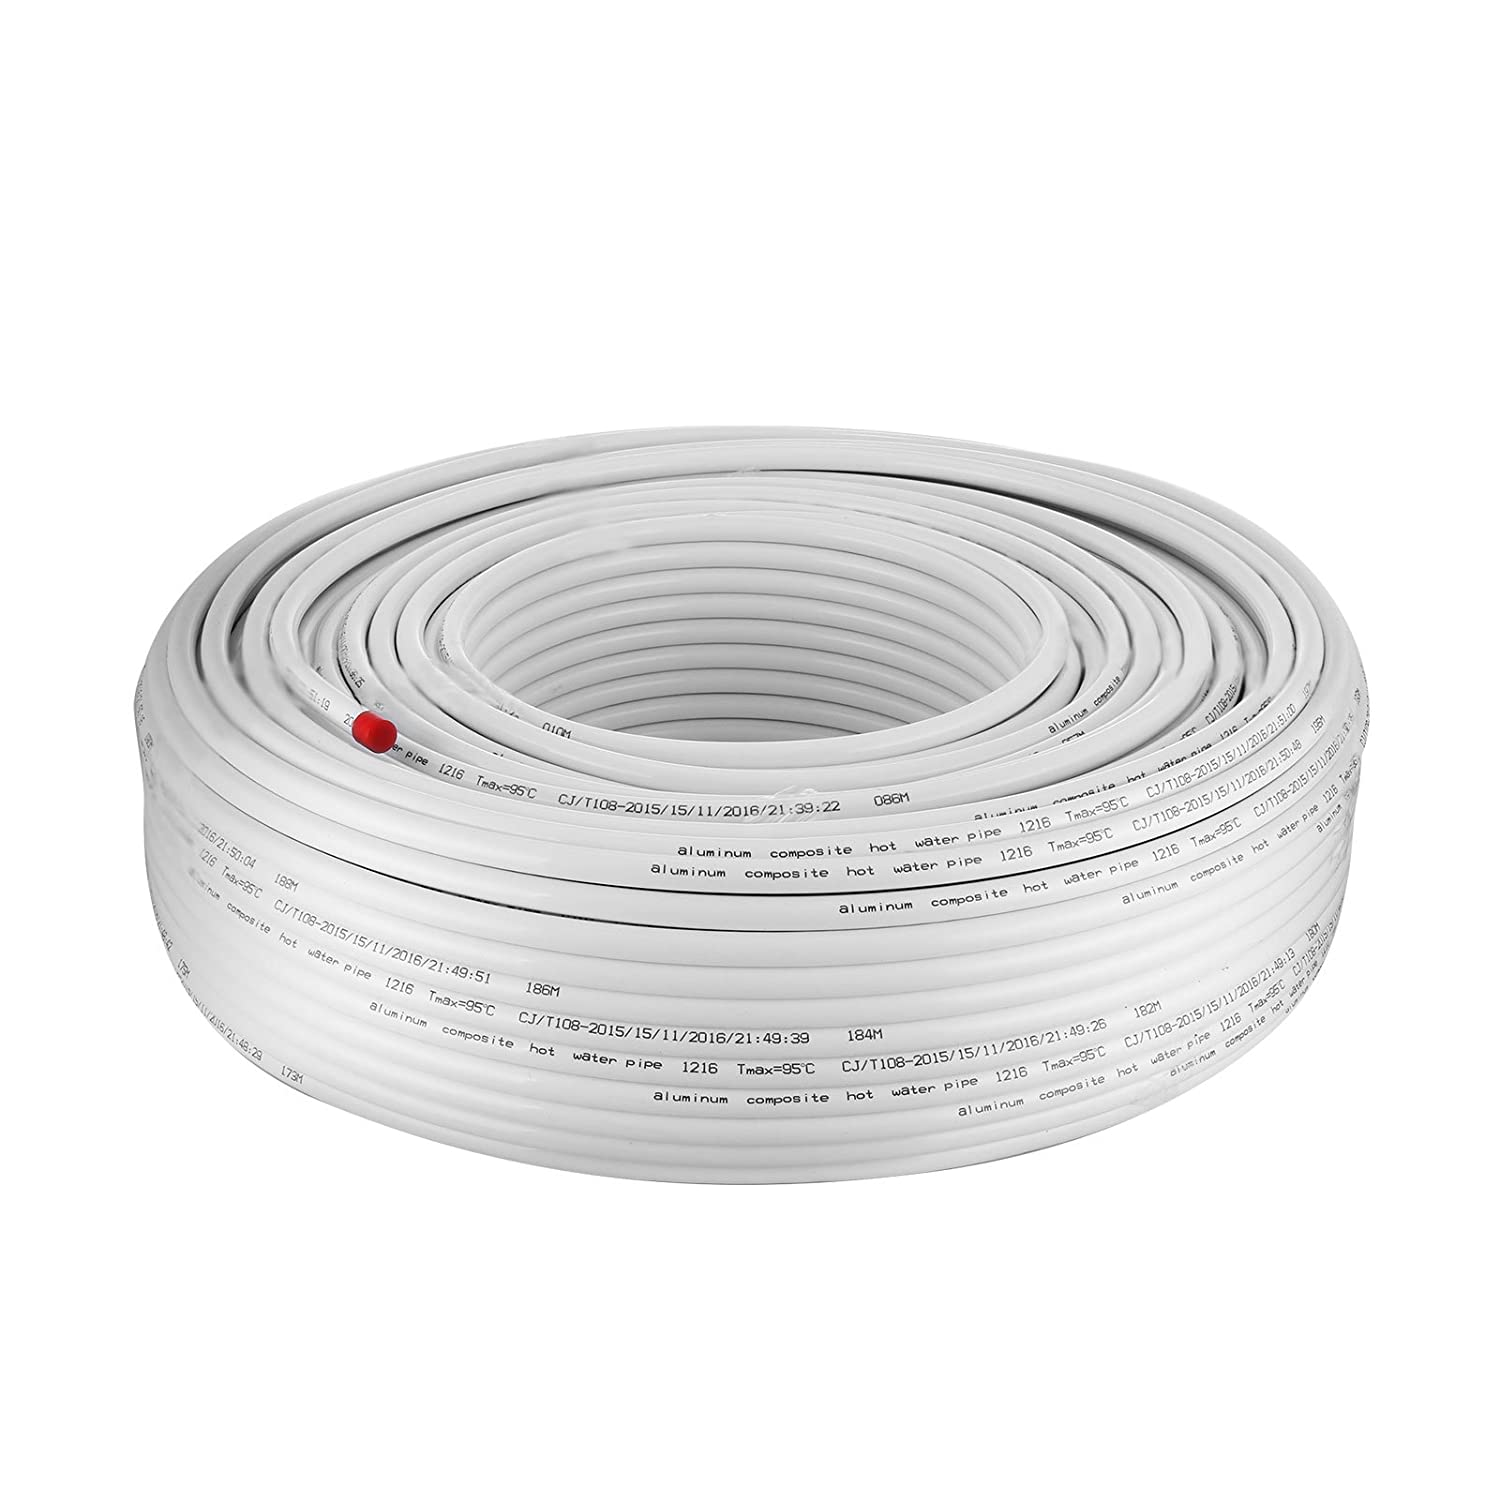 BestEquip White PEX AL PEX Tubing 1/2 Inch by 656FT 200M Tube Coil Portable Radiant Heat PEX for Hot and Cold Water Plumbing Application (1/2Inch 656FT ...